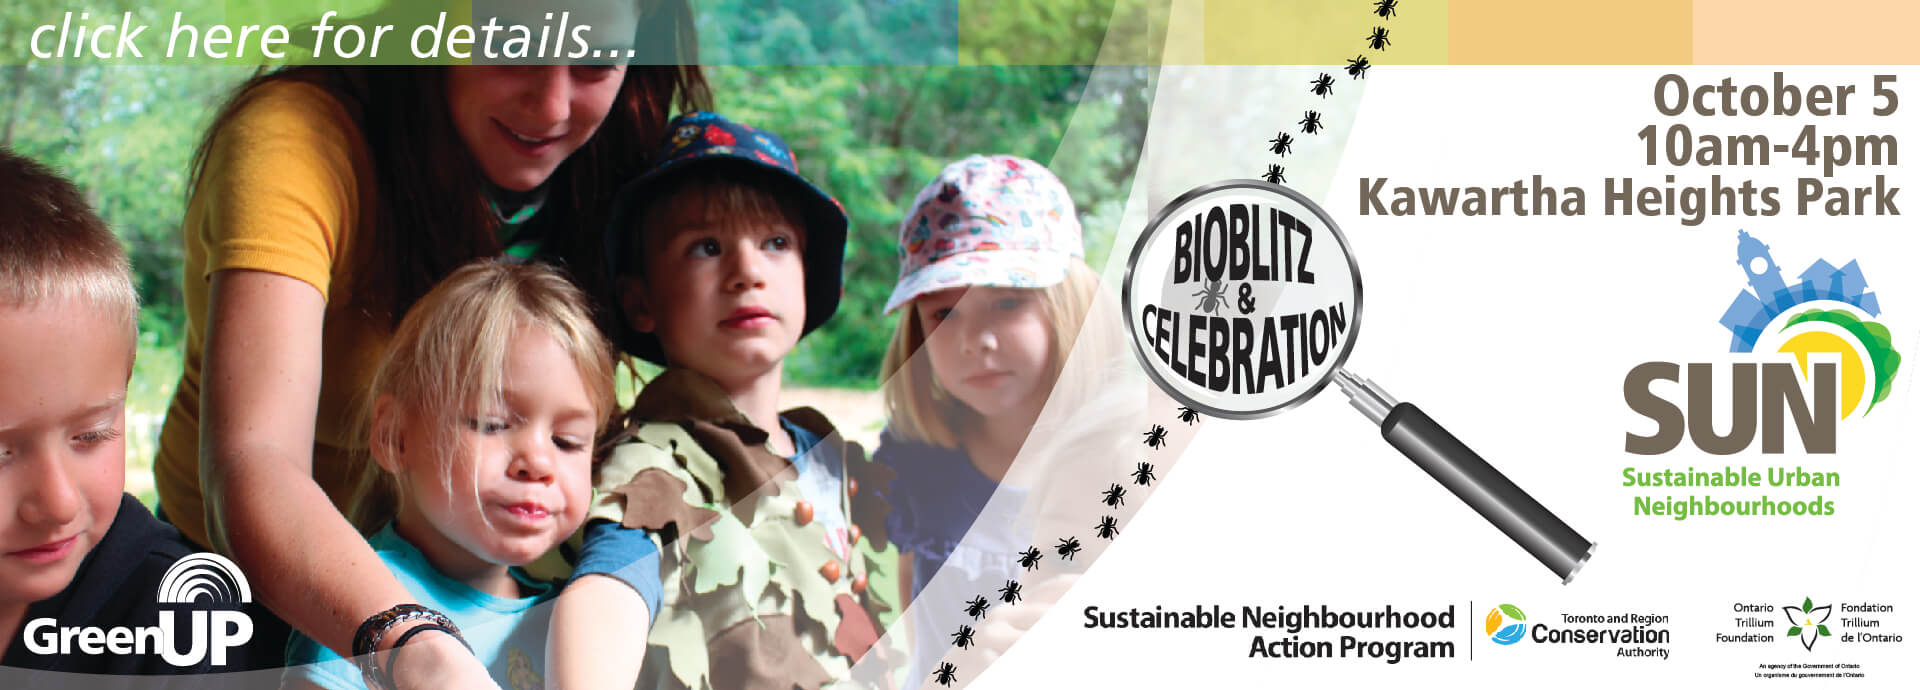 Event Graphic for October 5 Bioblitz and Celebration of SUN